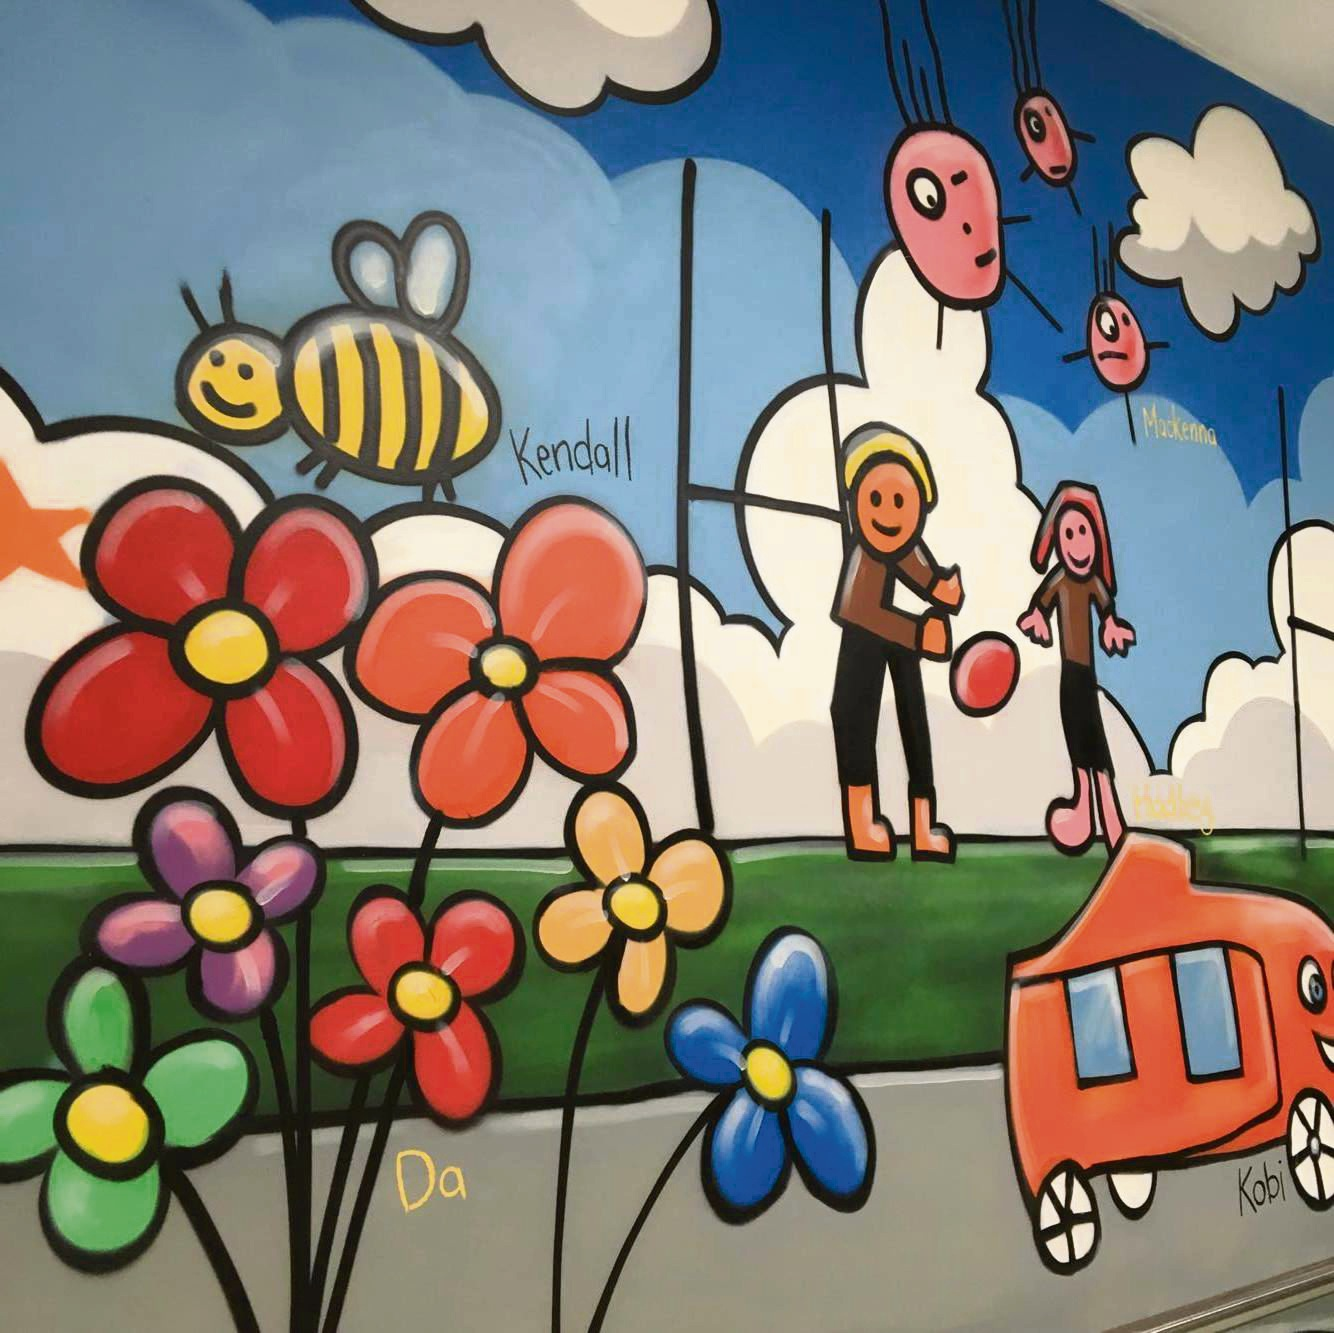 Graffiti artist brings children's artworks to life at Whitford City shopping centre with mural